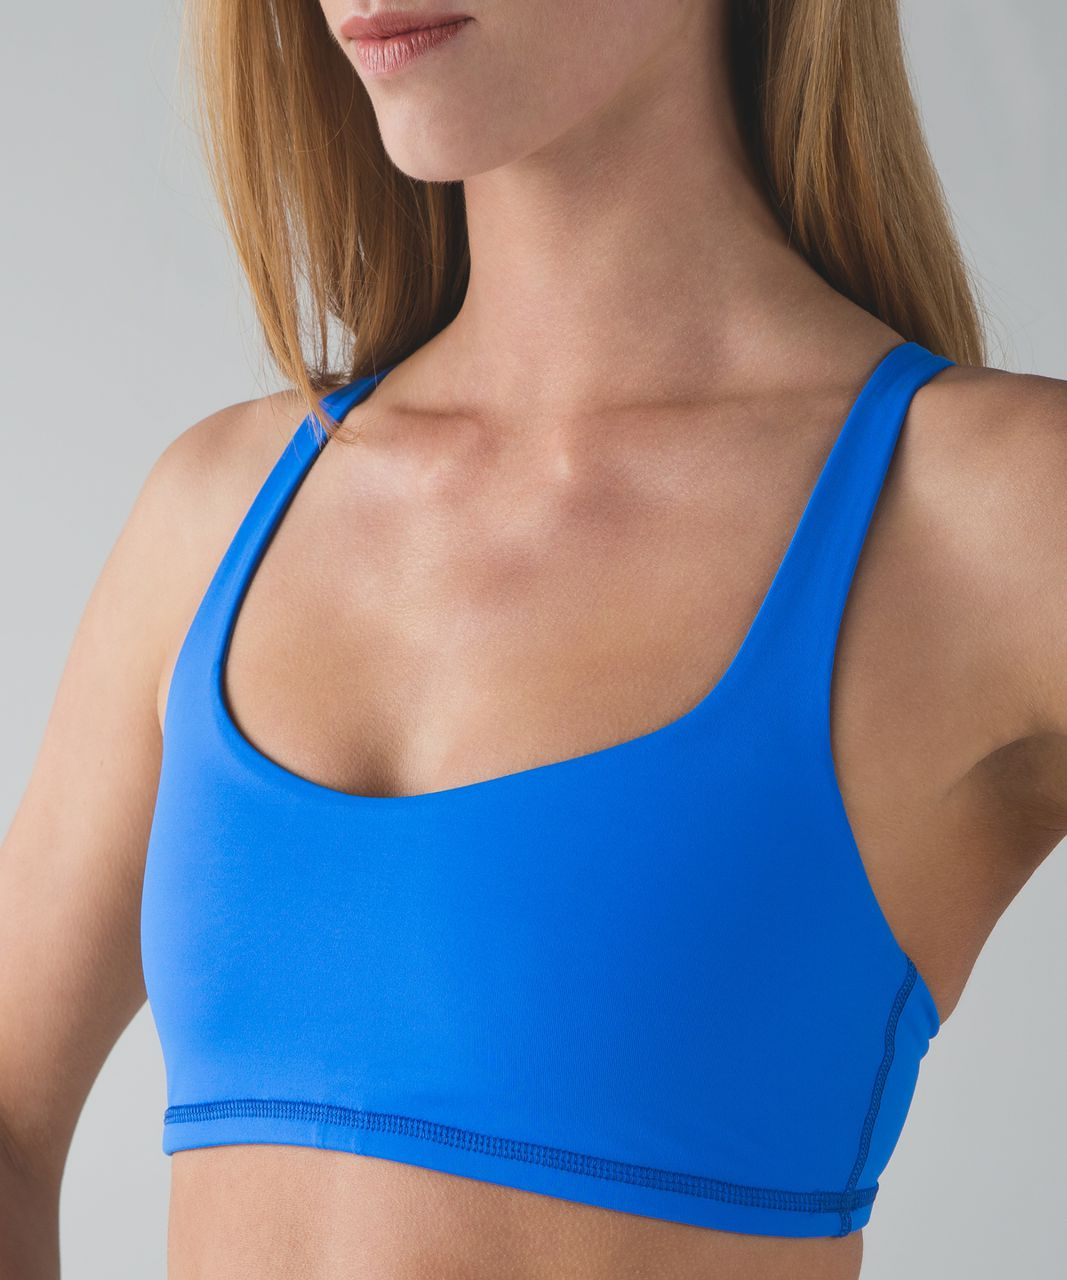 Lululemon Free To Be Bra - Harbor Blue